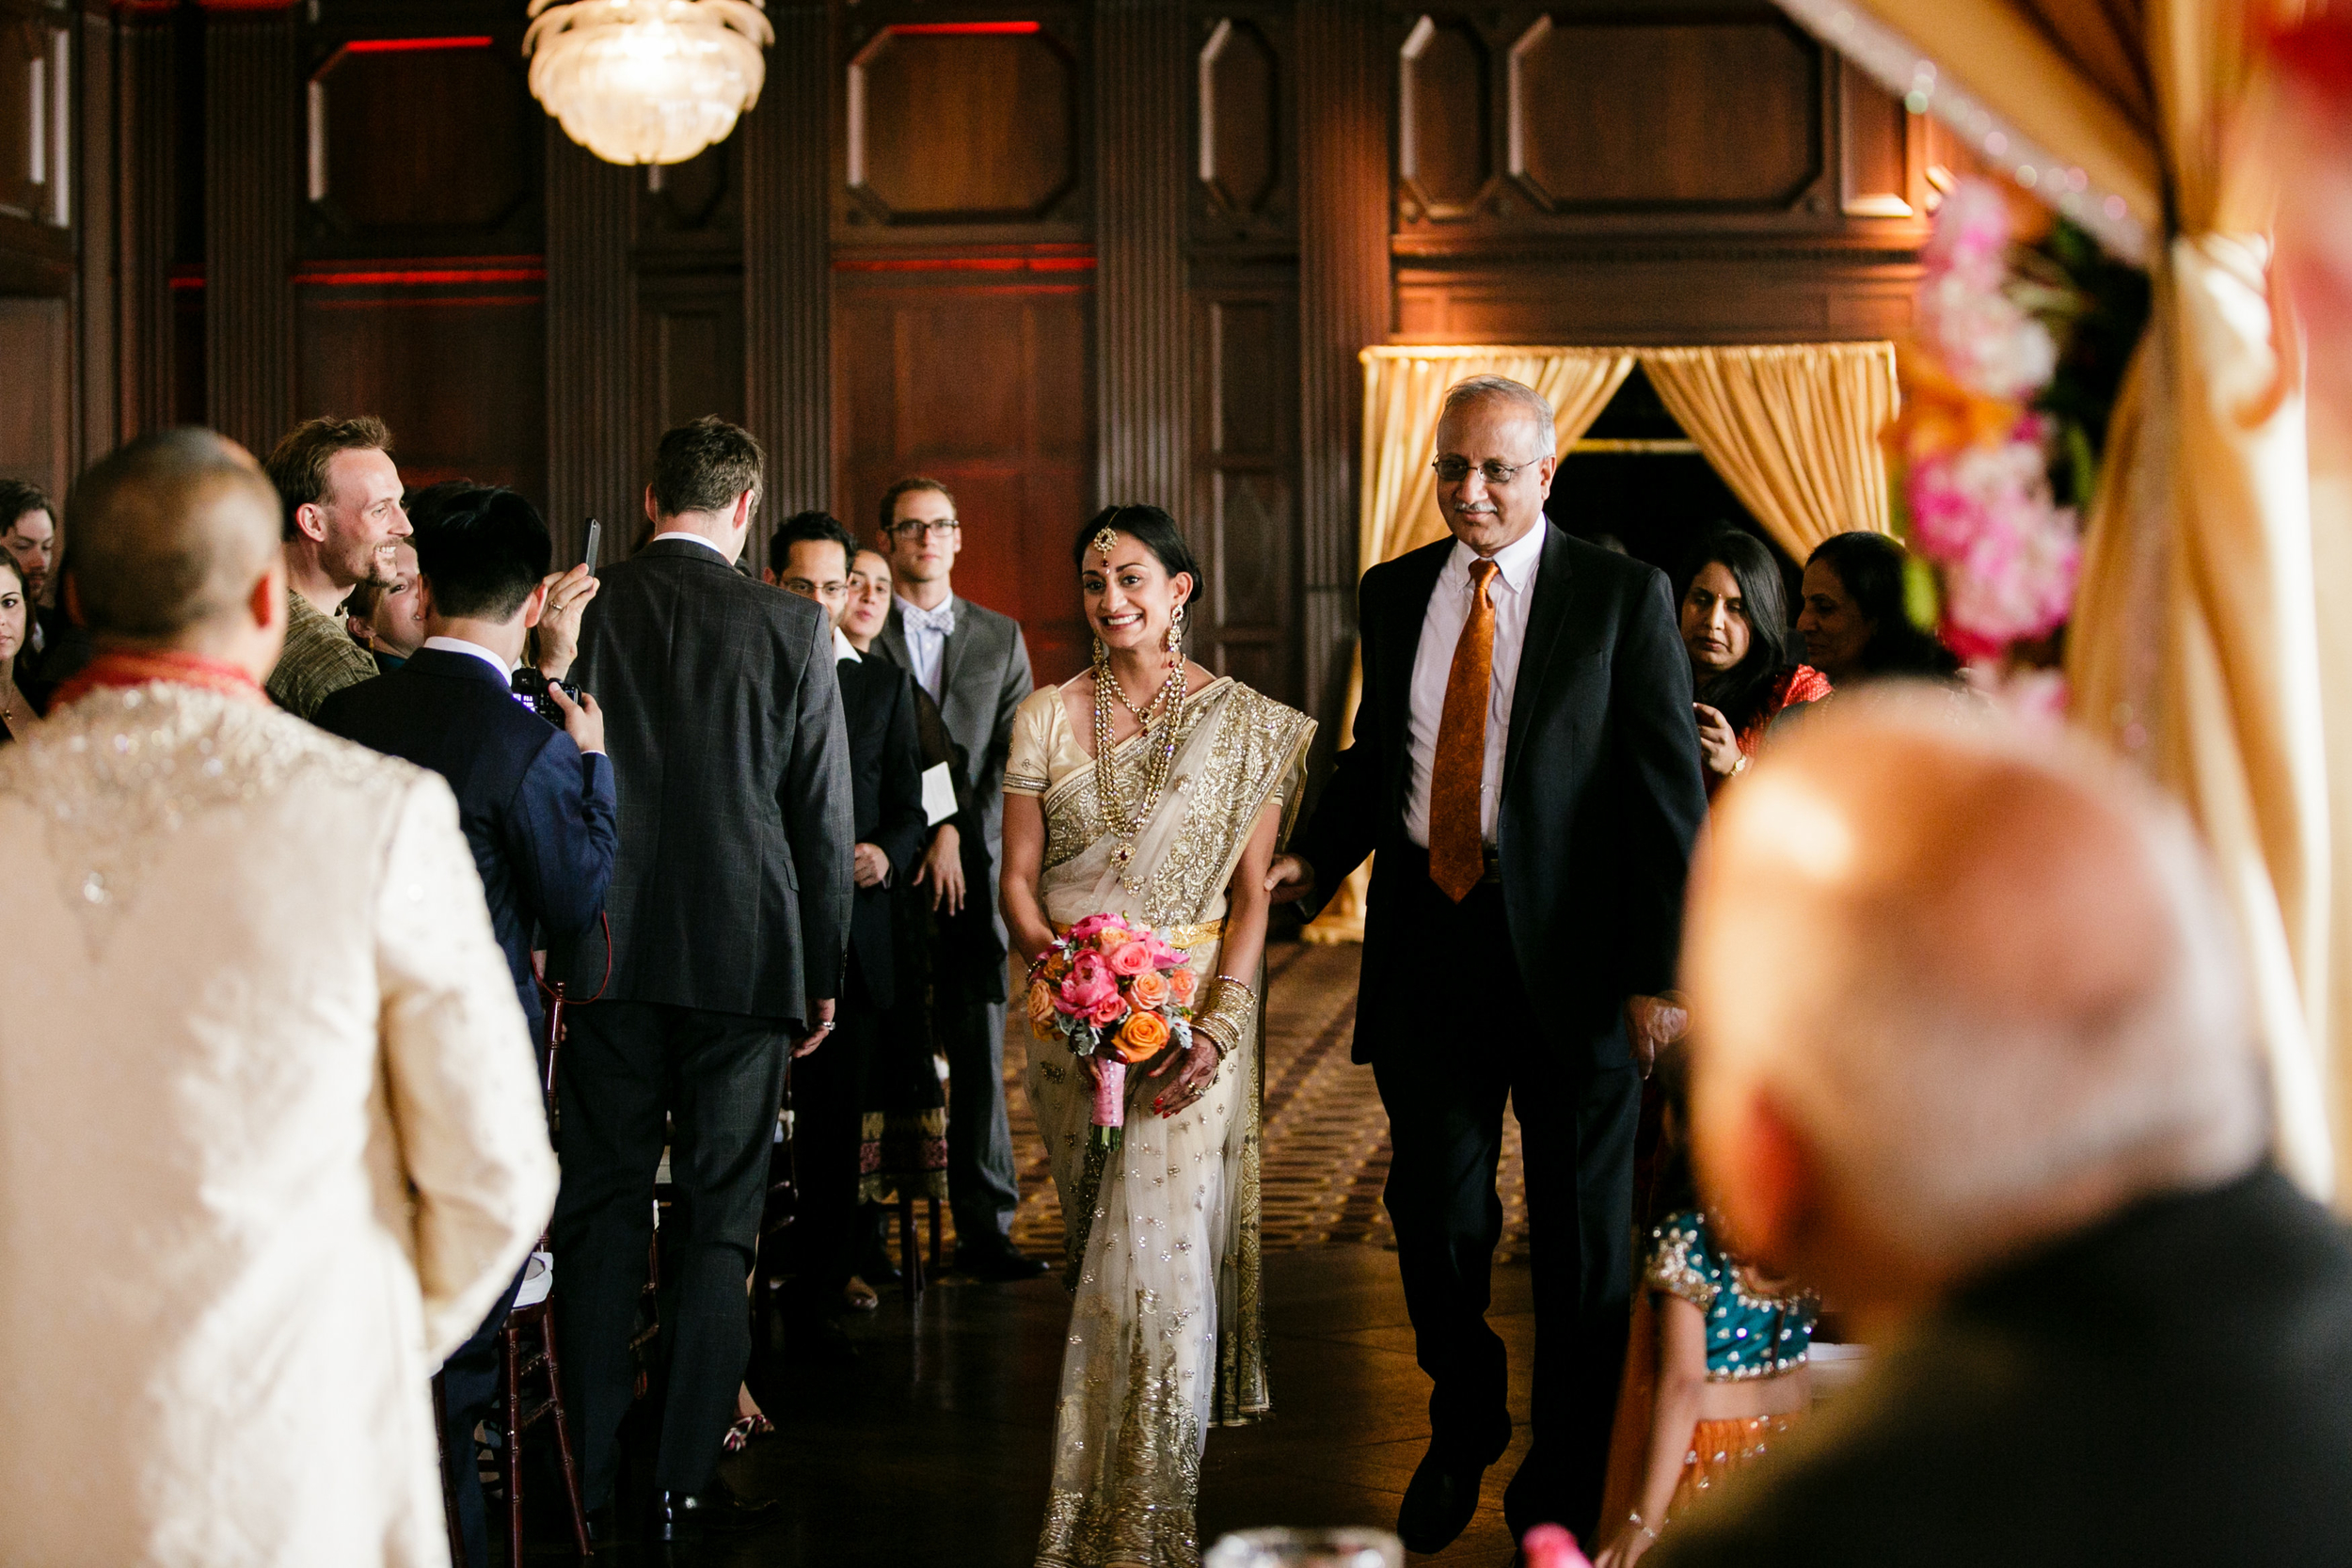 AnaisEvents_JihanCerdaPhotography_Priya-and-Jason - 068.jpg